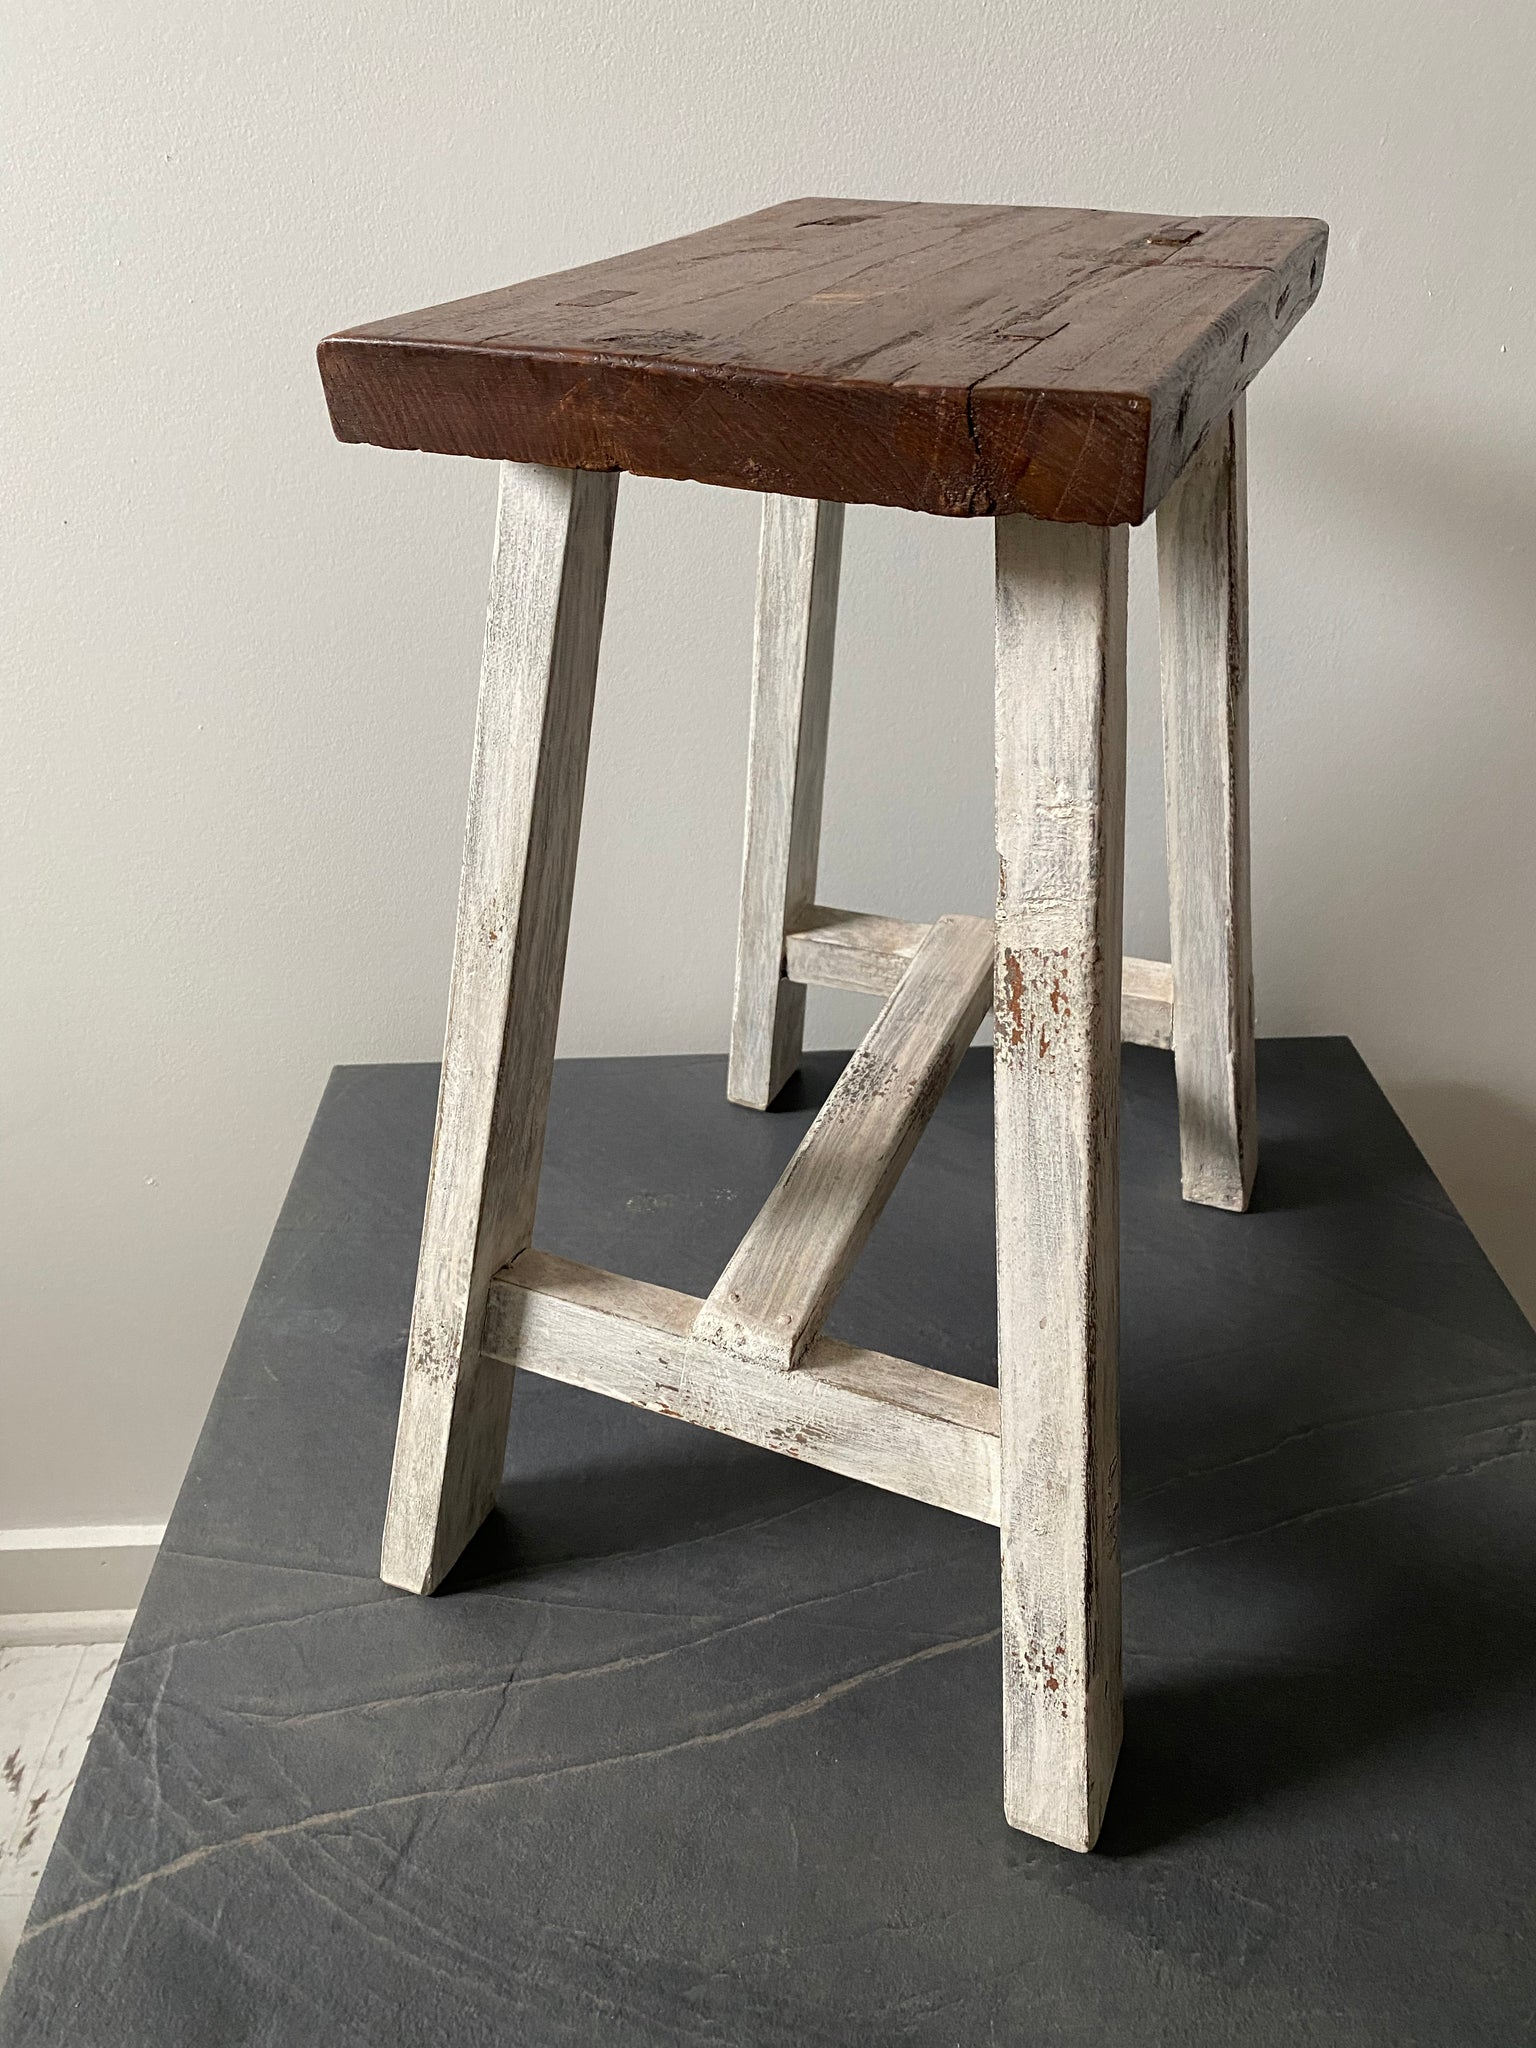 Country Stool with White Legs